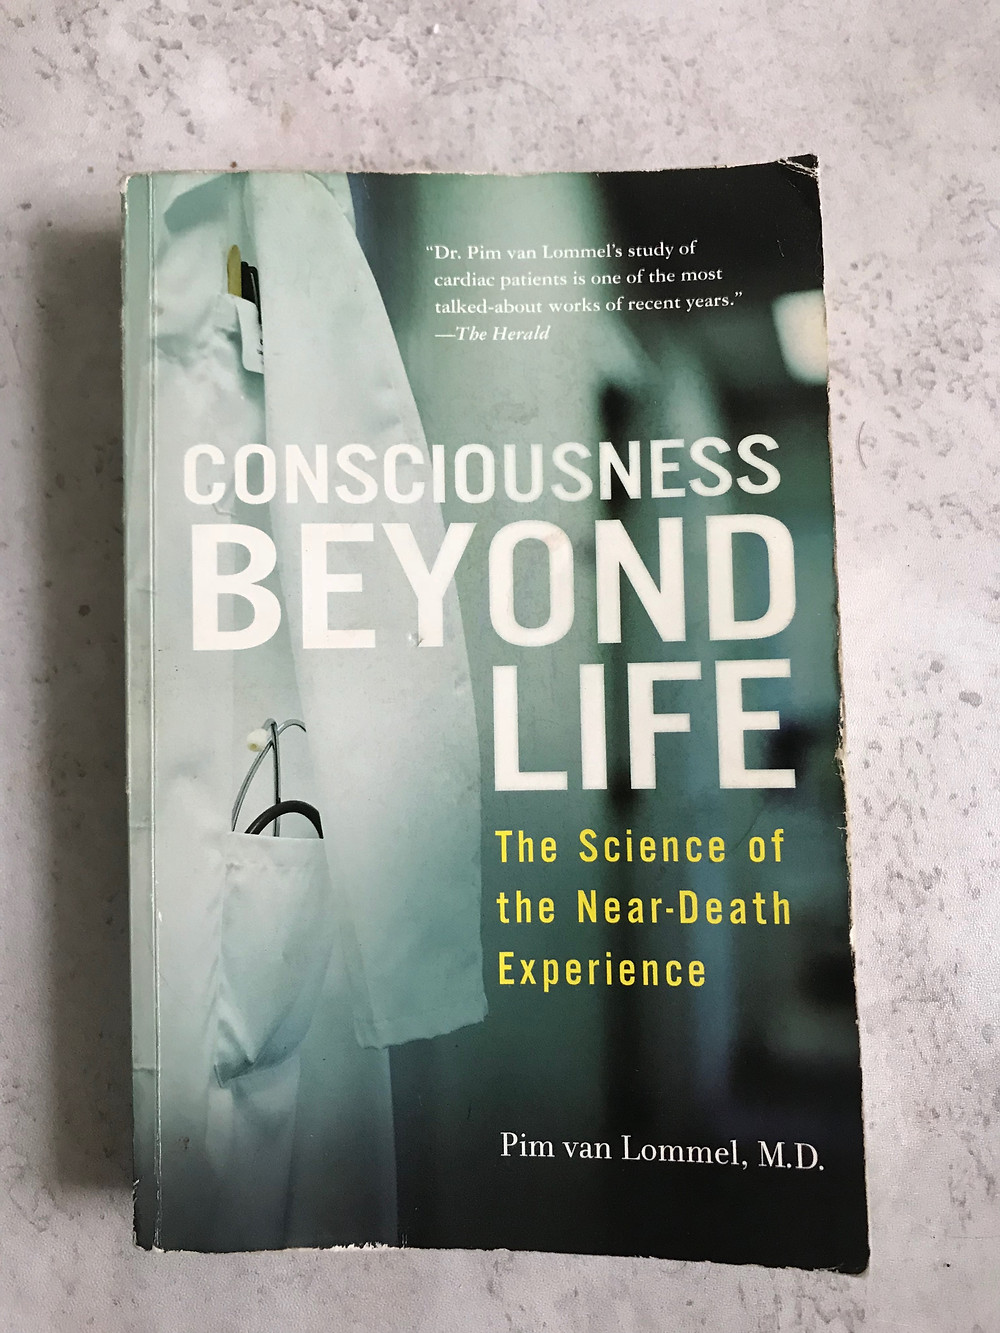 'Consciousness Beyond Life- The Science of the Near Death Experience' by Pim van Lommel